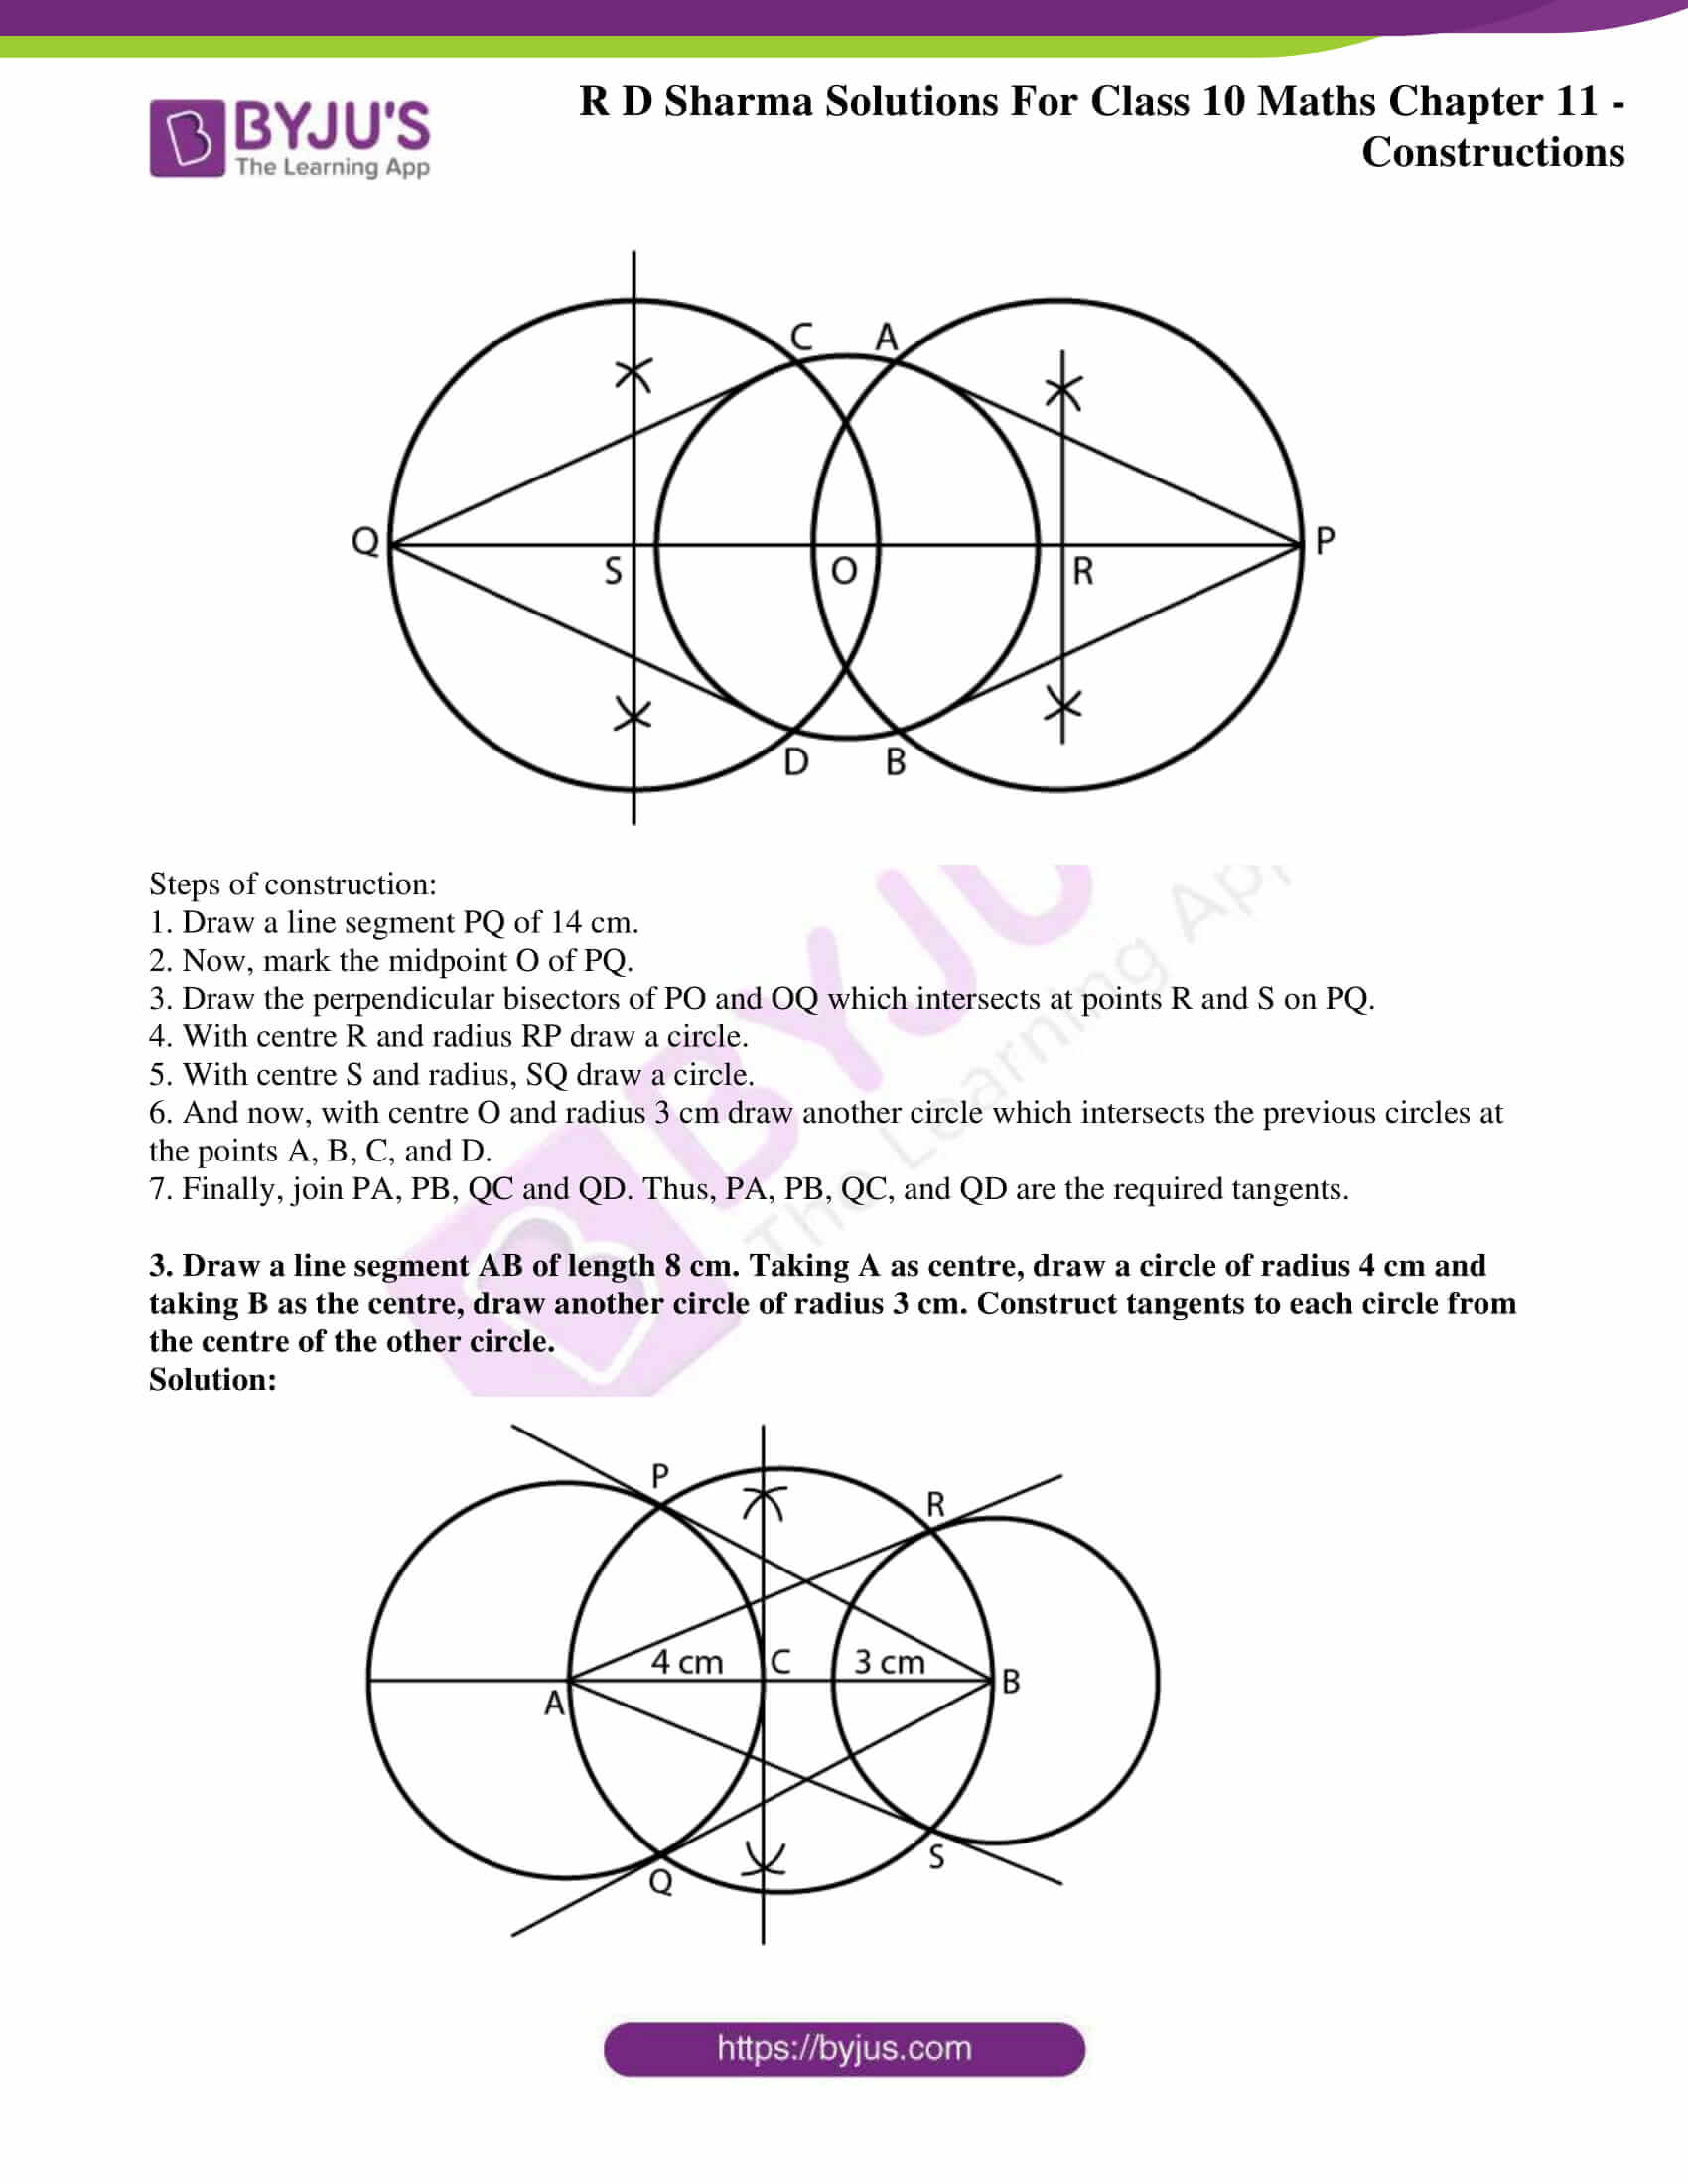 rd sharma solutions for class 10 chapter 11 ex 3